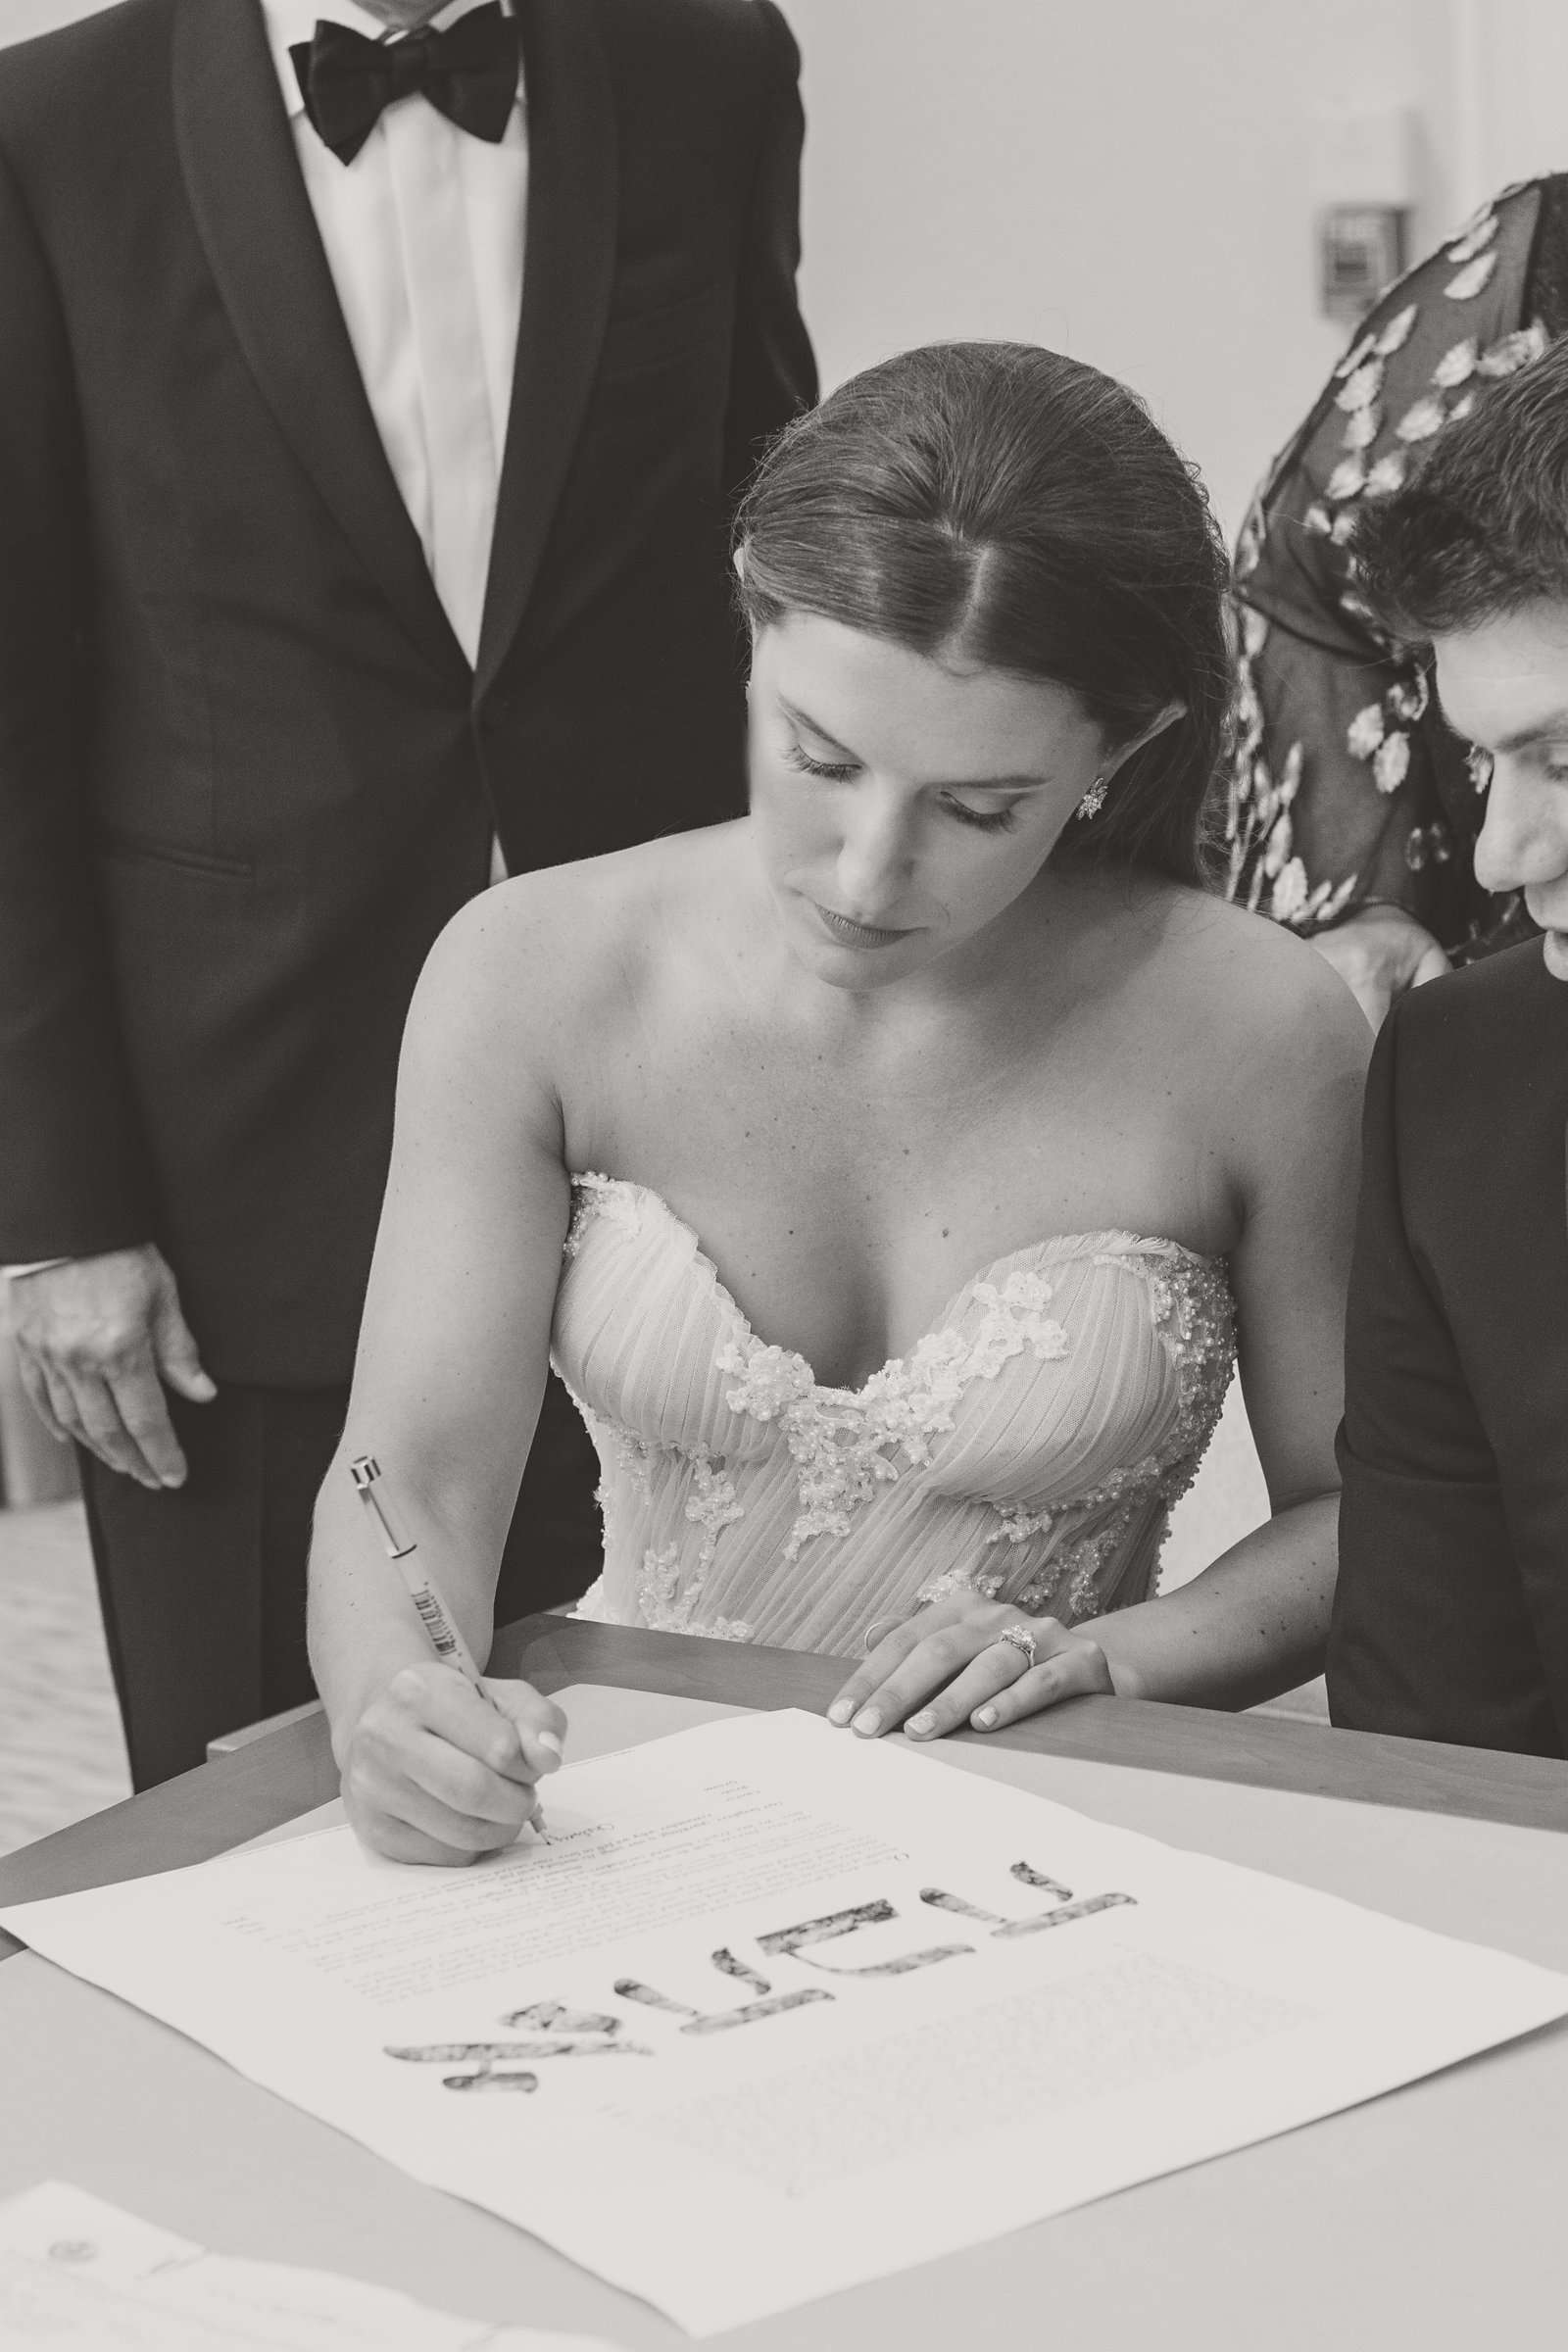 signing the ketubah during a Jewish wedding